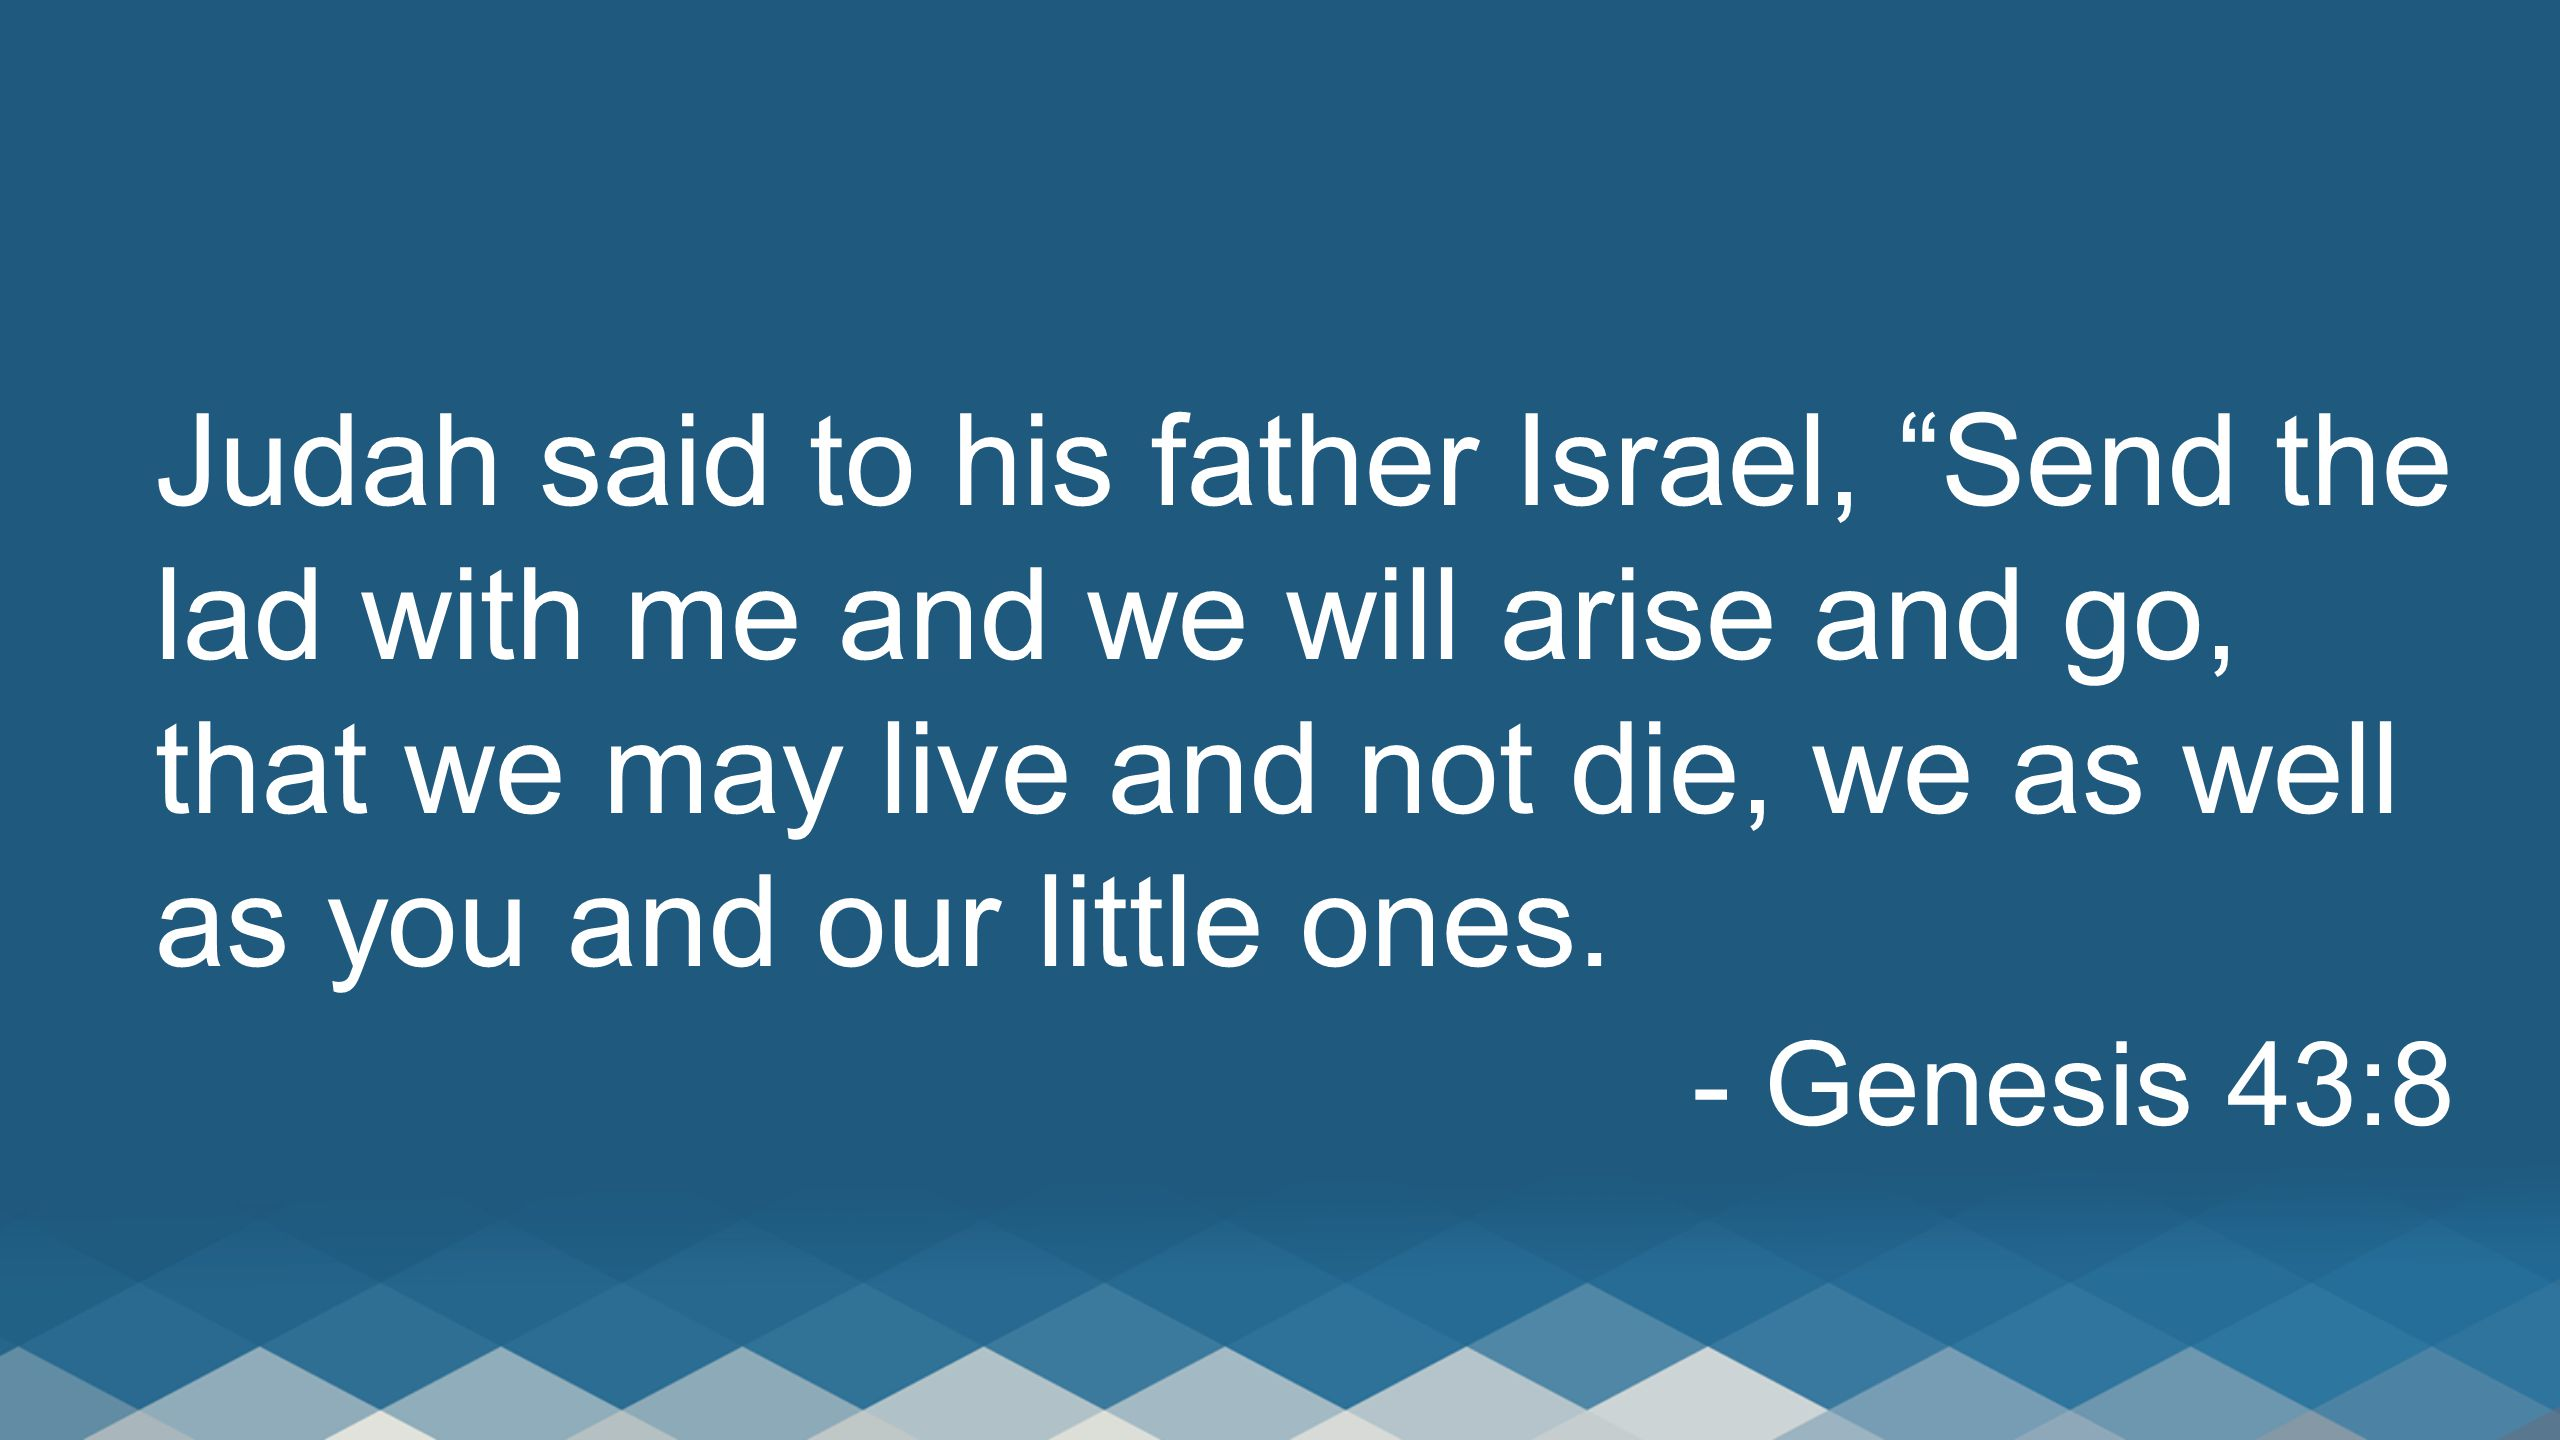 Judah said to his father Israel, Send the lad with me and we will arise and go, that we may live and not die, we as well as you and our little ones.